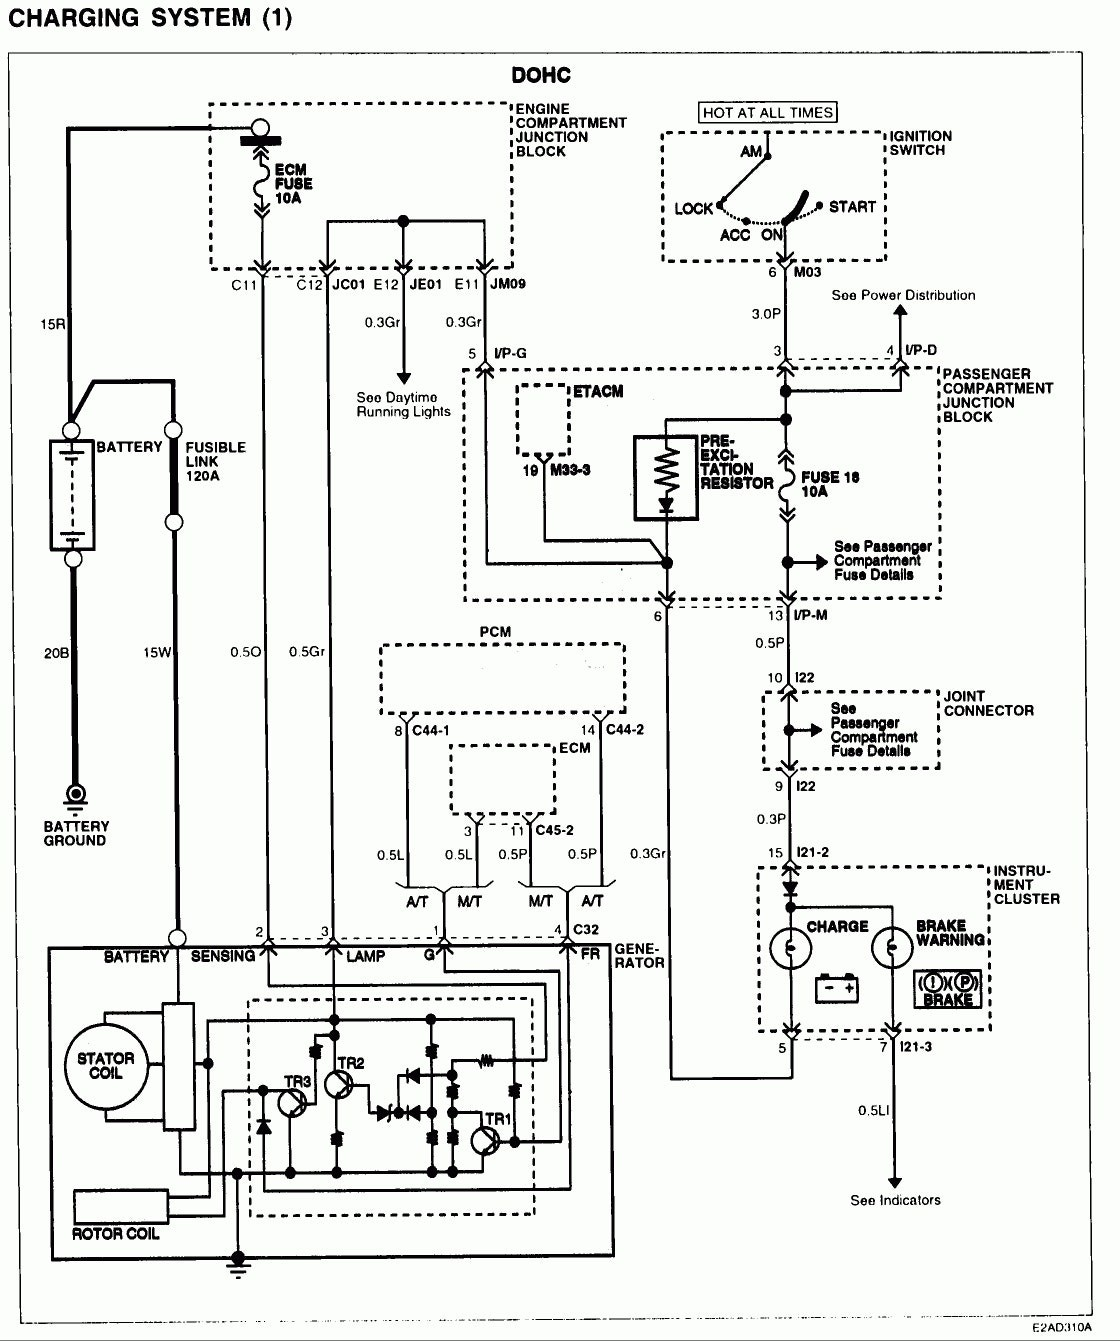 wire diagram 04 hyundai santa fe ets  u2022 wiring diagram for free